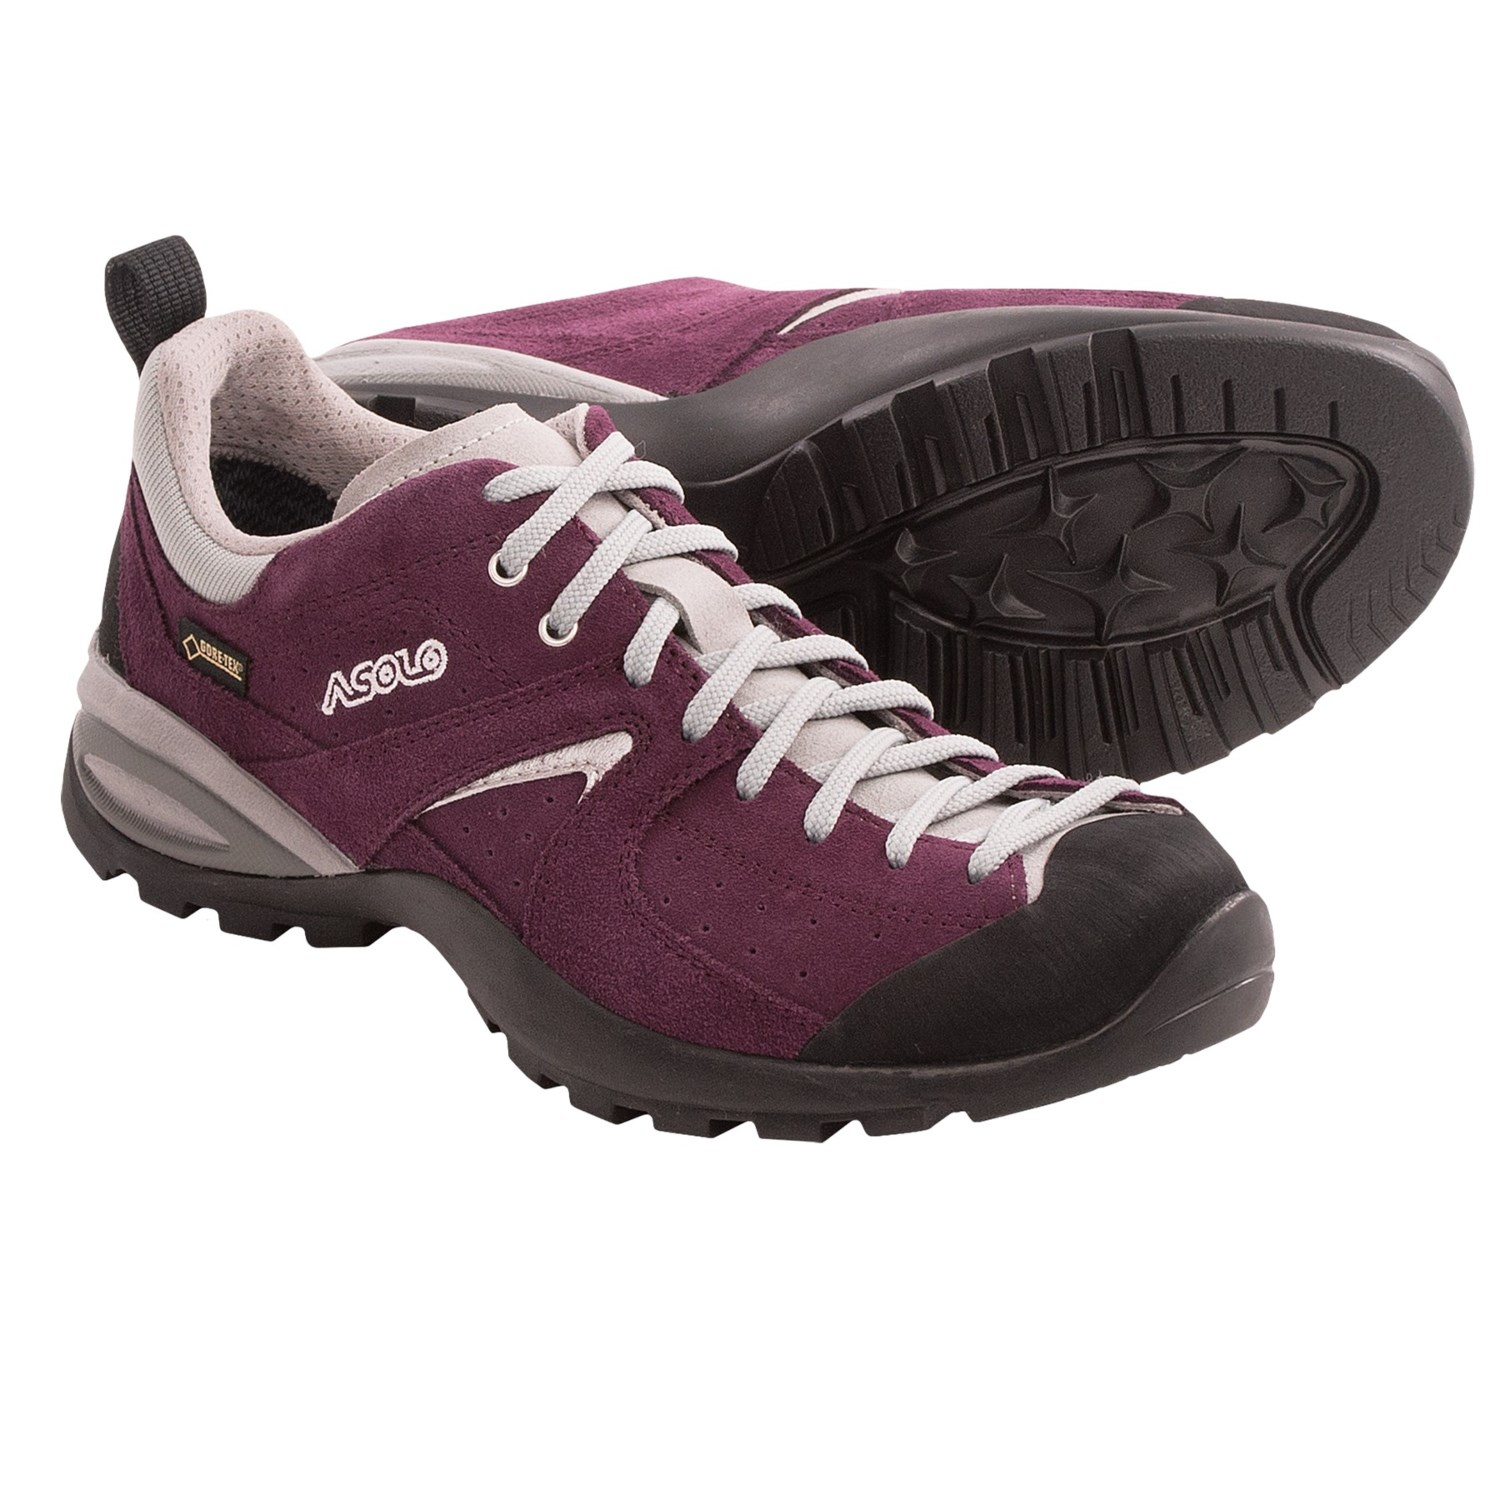 Salewa Capsico Approach Shoes (For Women) - Save 66